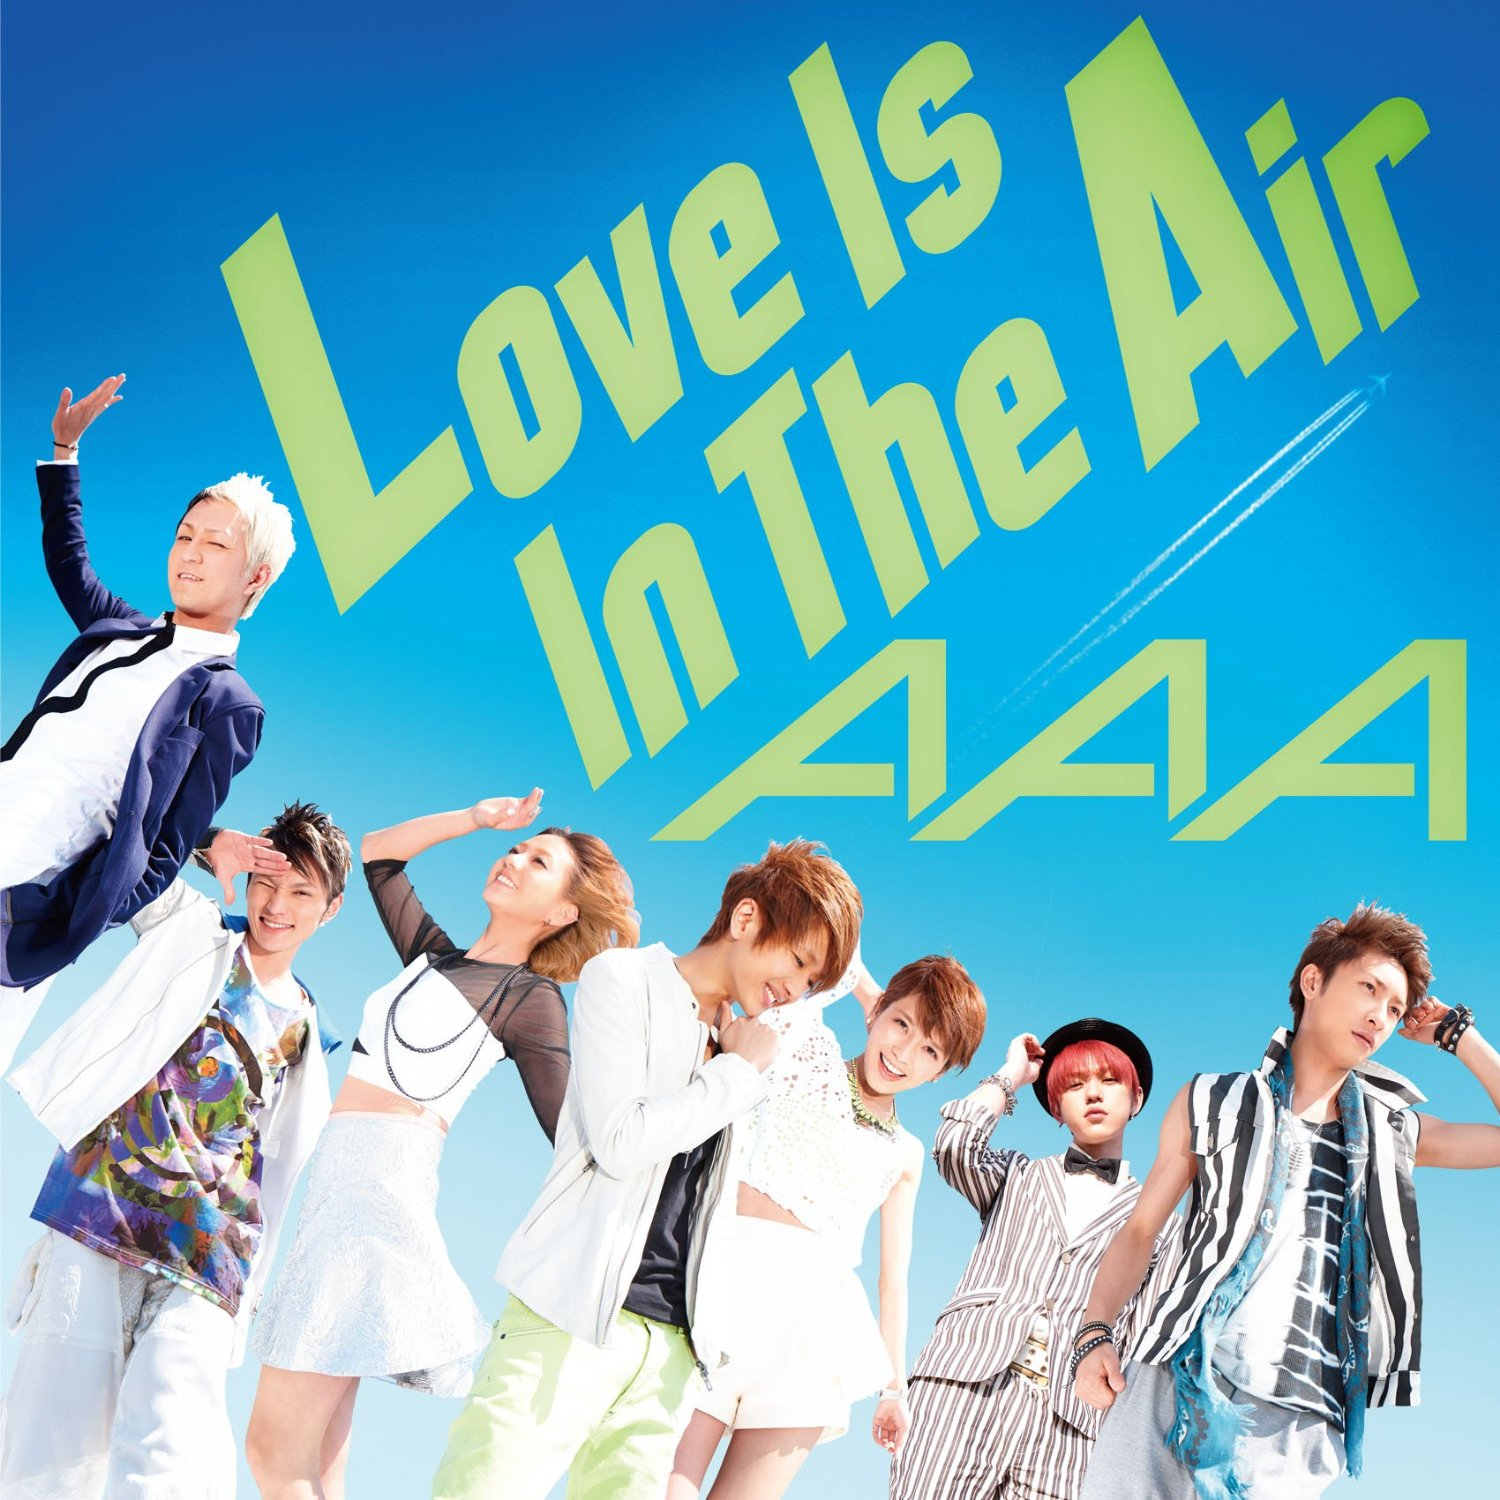 Aaa Aaa - love is in the air Agricultural Adjustment Act Posters